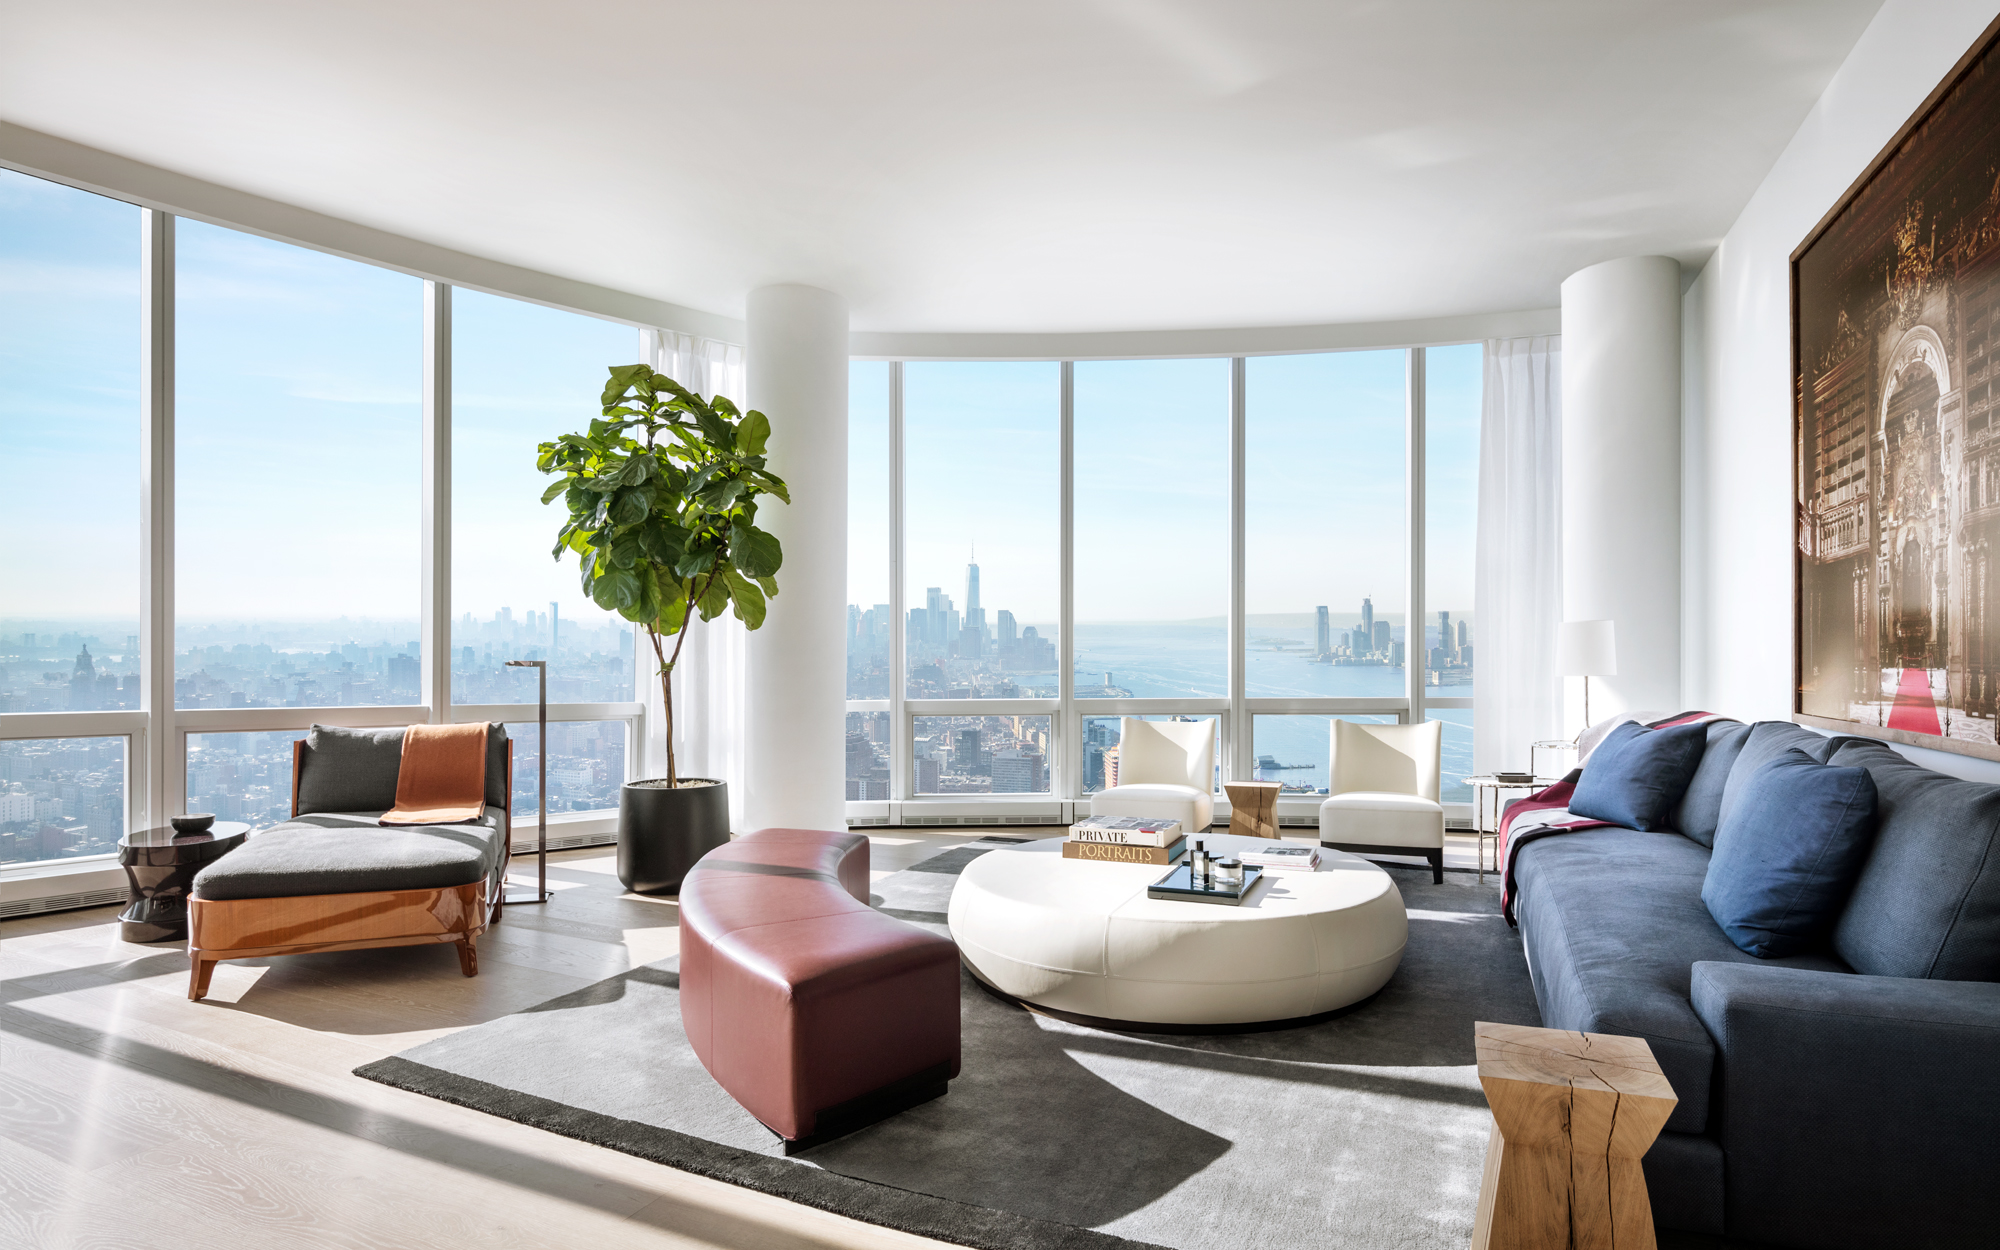 The Diller Scofidio + Renfro-Designed Fifteen Hudson Yards Reveals Lavish New Listings